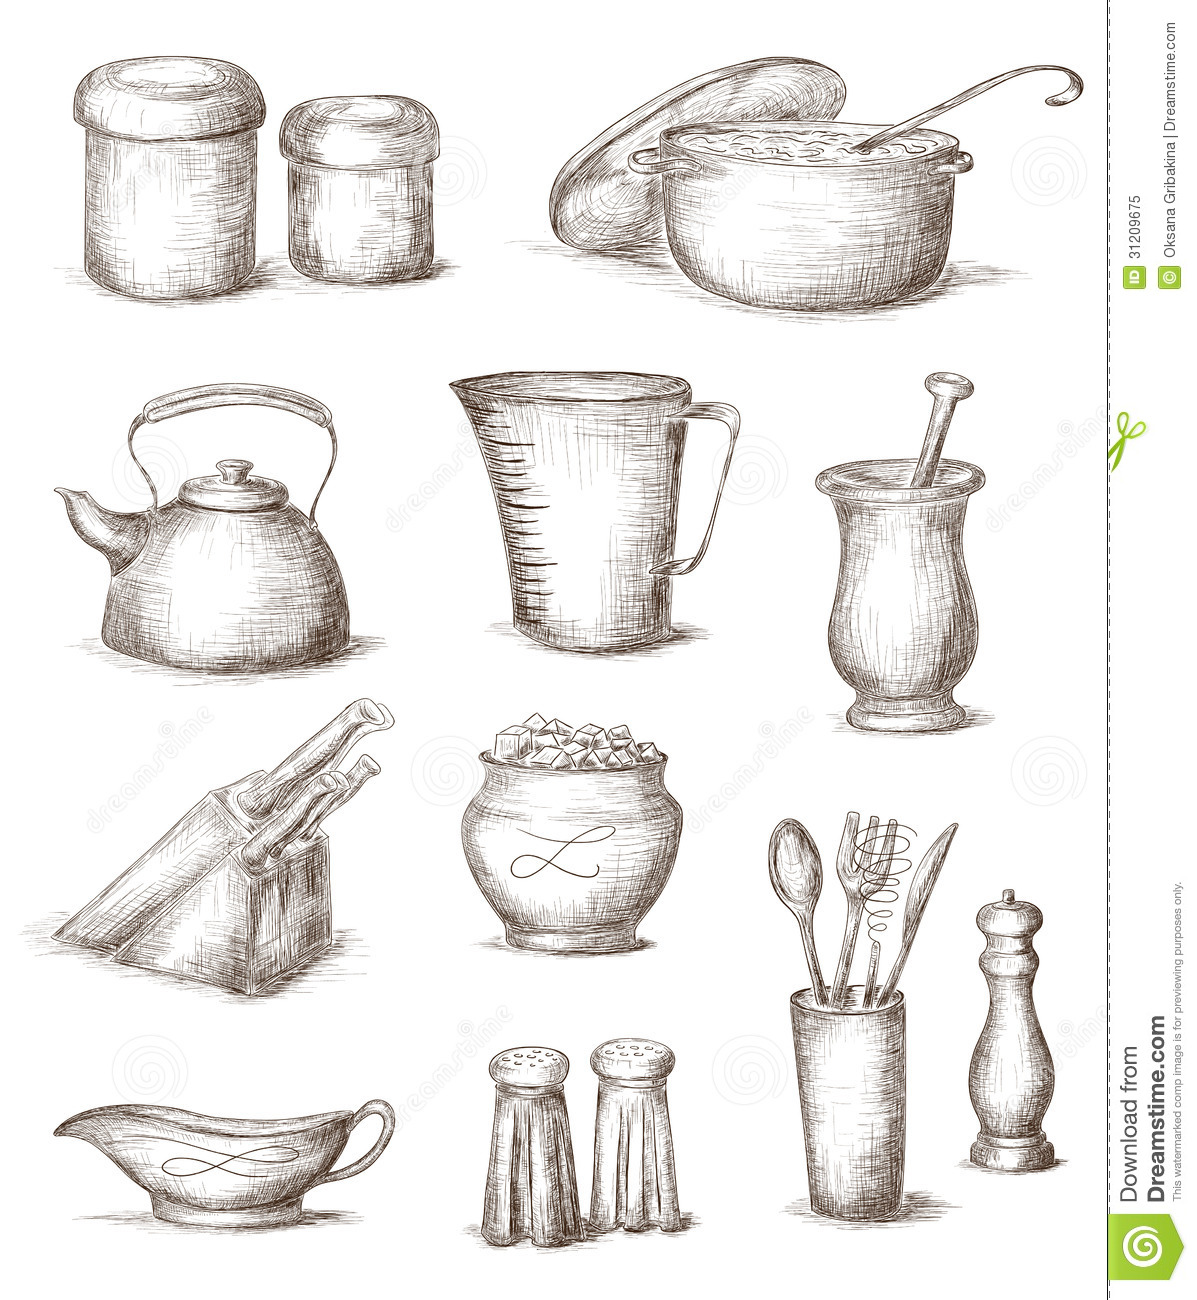 Hand Drawn Kitchen Utensils Royalty Free Stock Photo Image 31209675